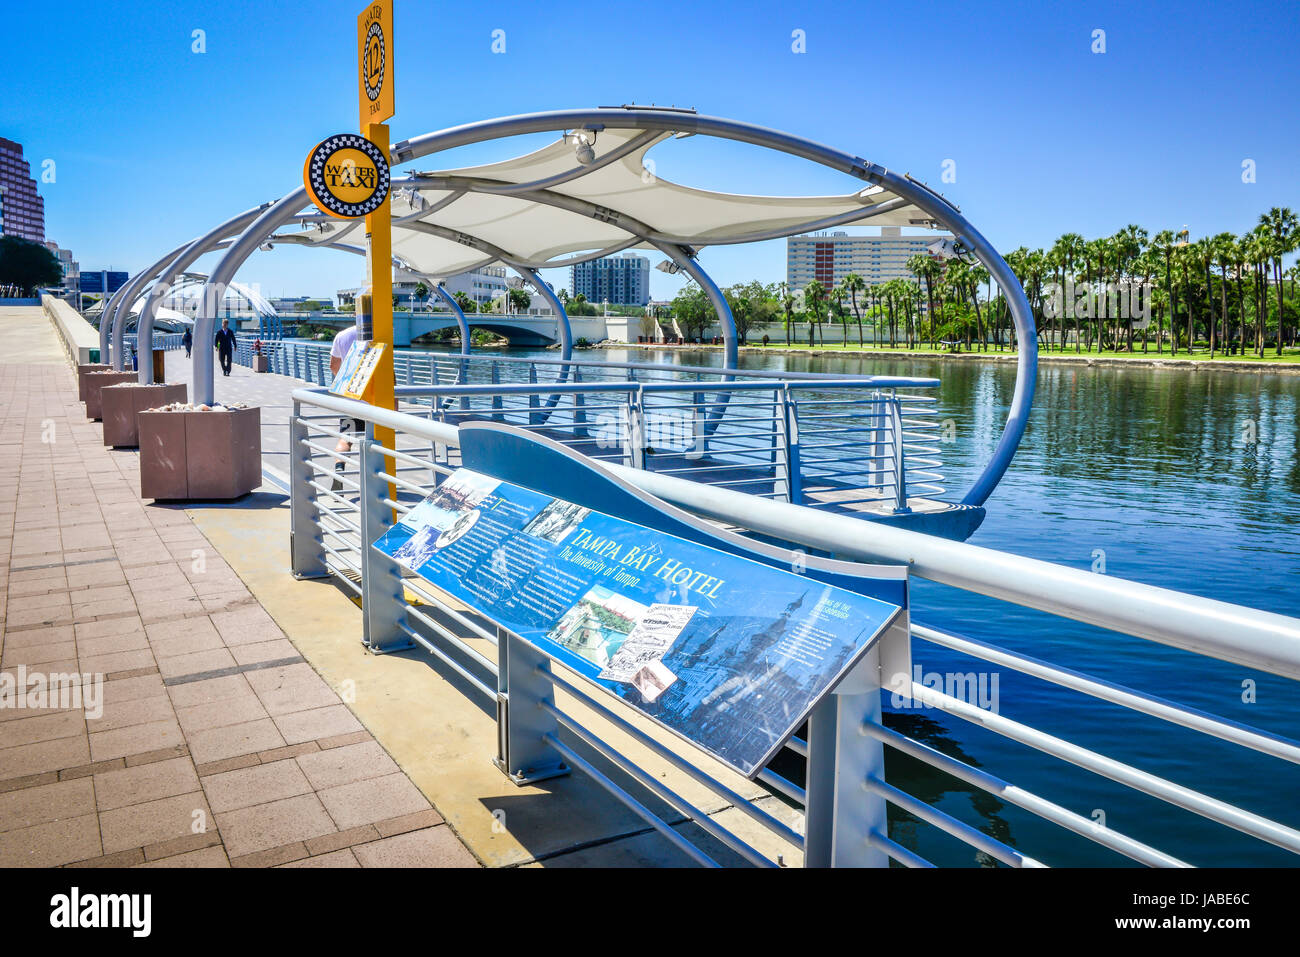 A map of the Tampa RiverWalk alongside the water taxi stand on the